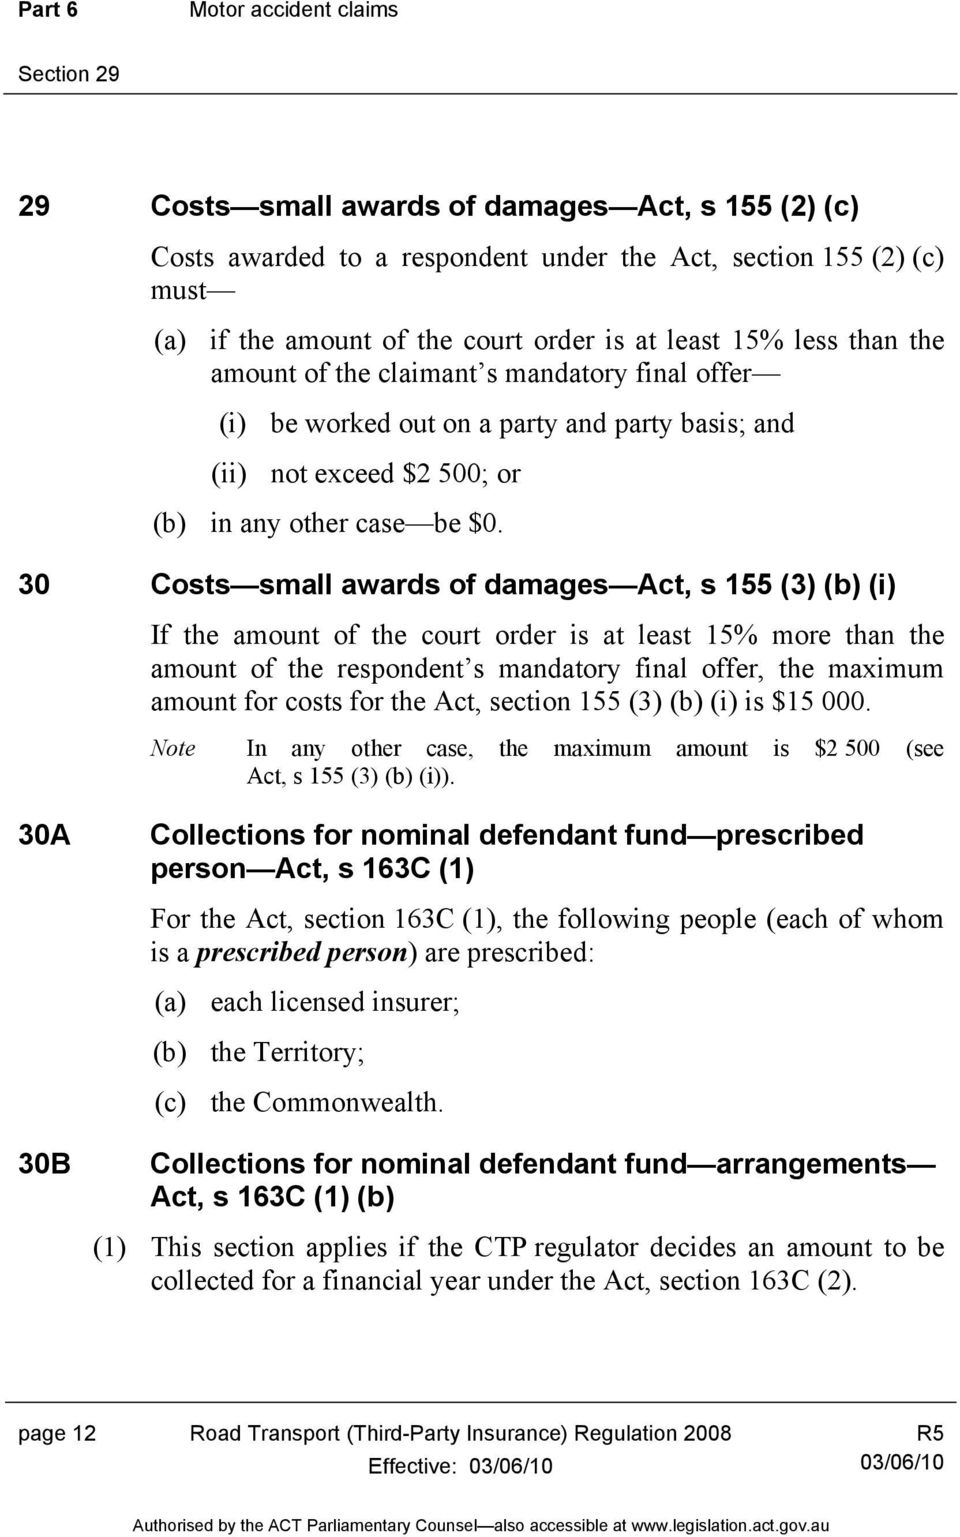 30 Costs small awards of damages Act, s 155 (3) (b) (i) If the amount of the court order is at least 15% more than the amount of the respondent s mandatory final offer, the maximum amount for costs